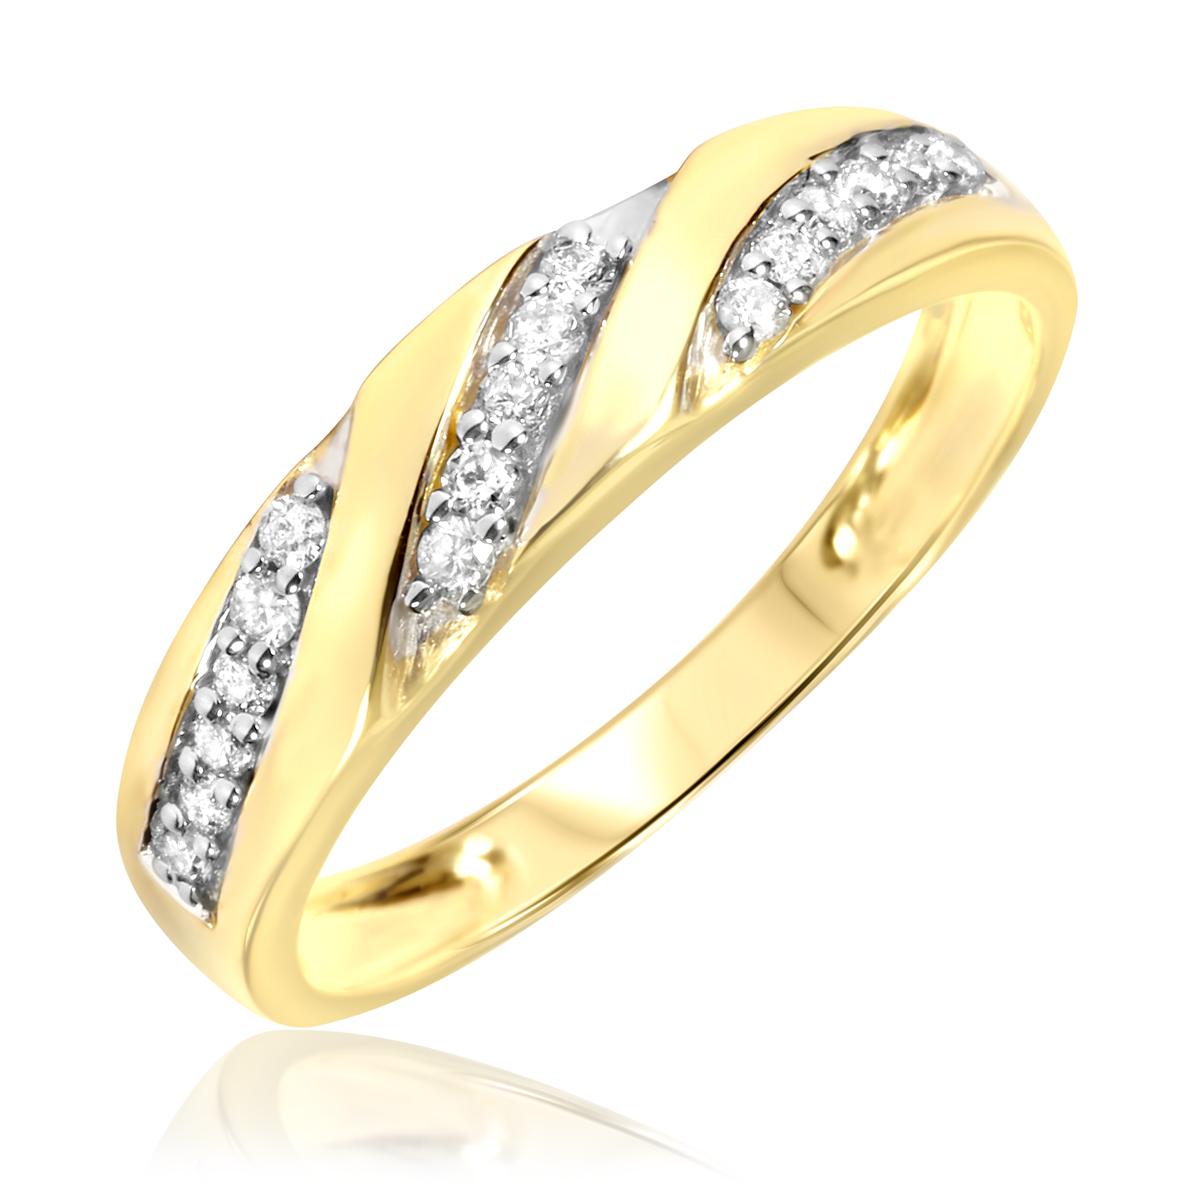 1/4 Carat T.W. Round Cut Diamond Men's Wedding Ring 14K Yellow Gold- Size 8